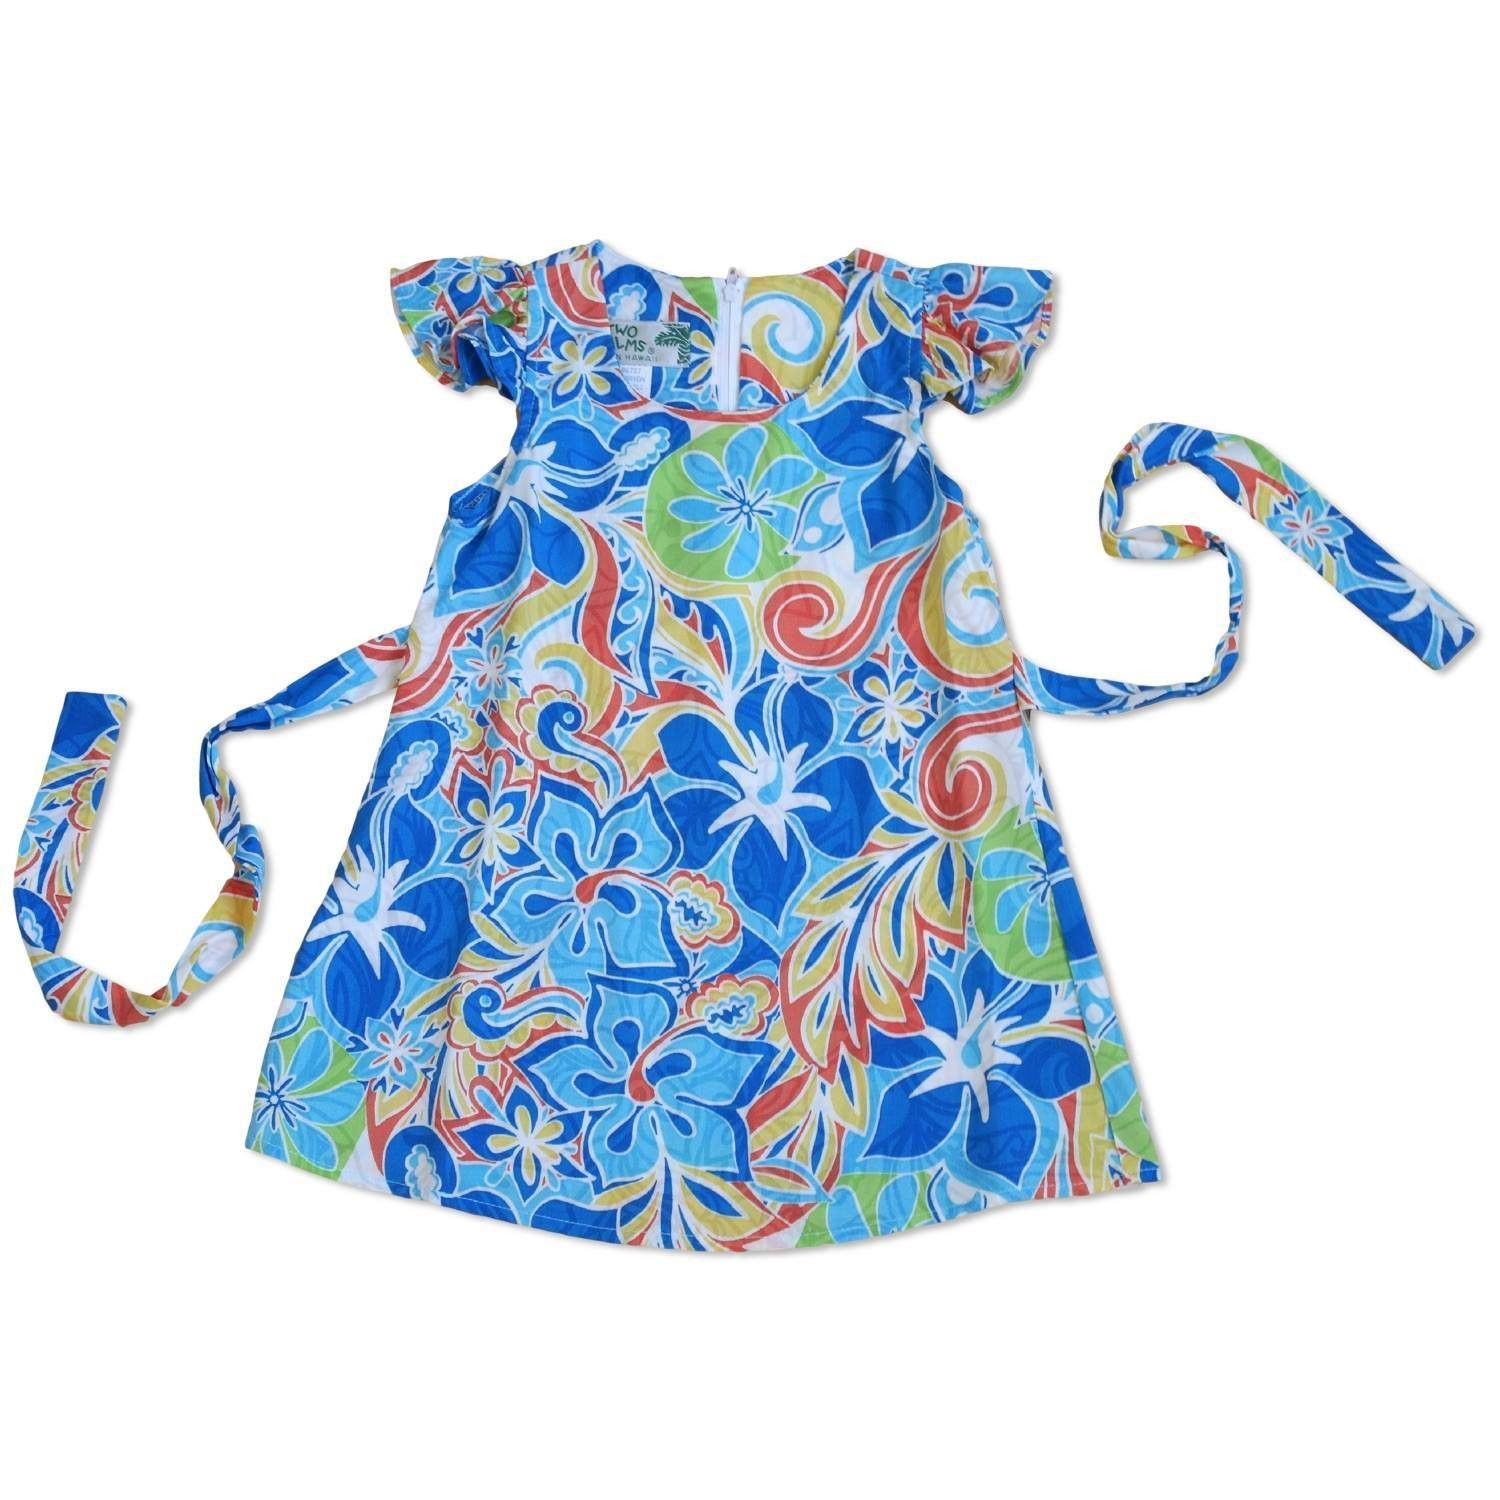 Seaglass Blue Hawaiian Girl Rayon Dress | Hawaiian girls, Blue ...